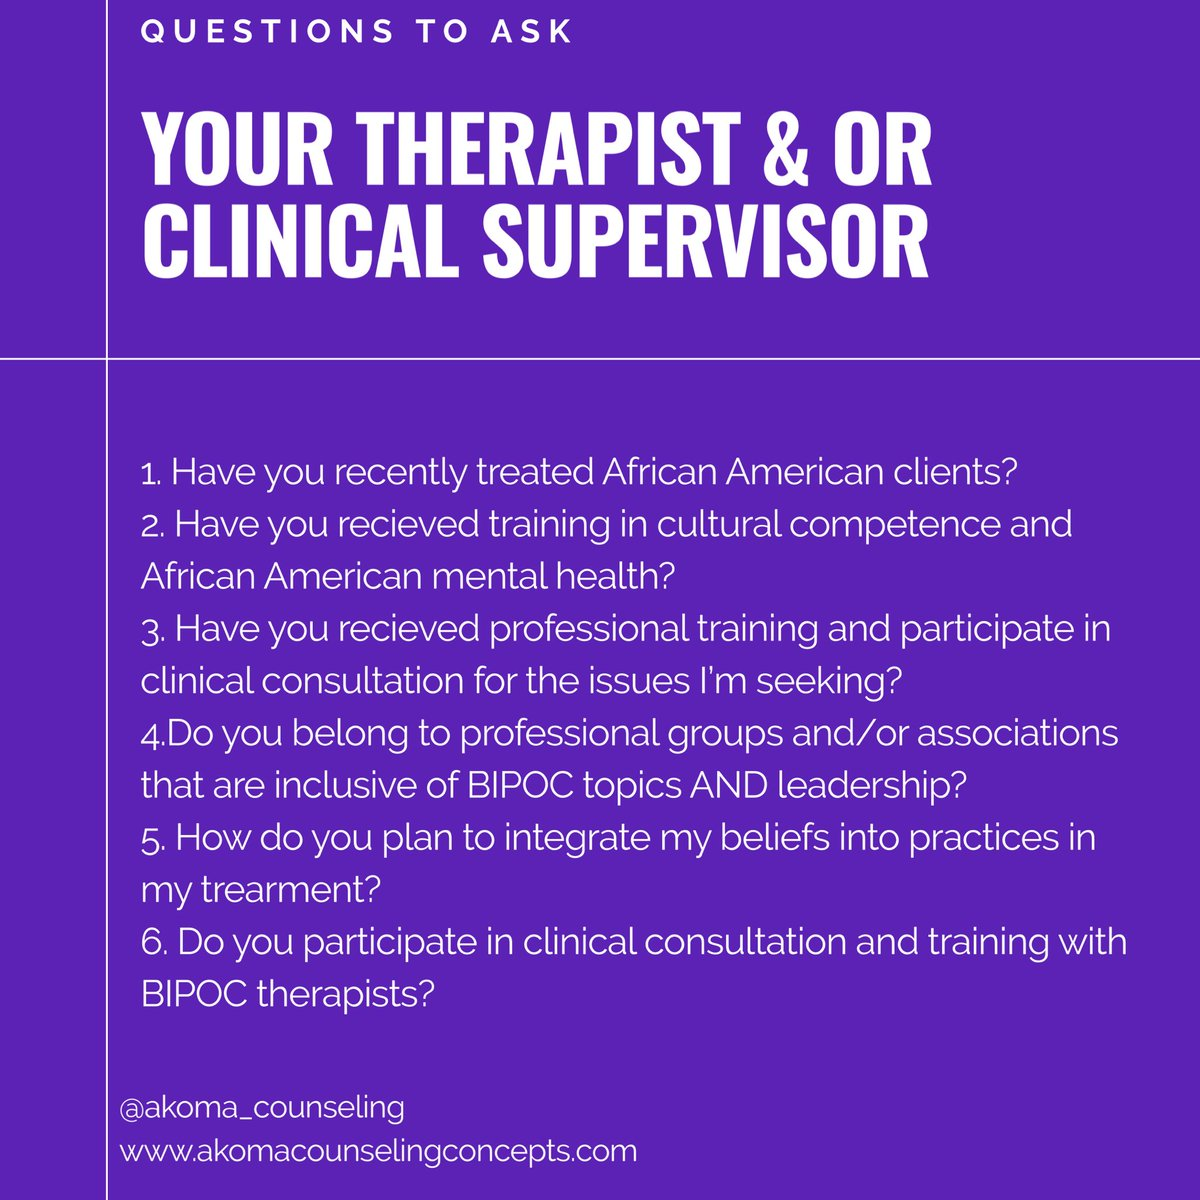 3. Have you recieved training and/or participate in clinical consultation for the issues I'm seeking? #BlackMentalHealth #thread https://t.co/XTf4ToFlDD